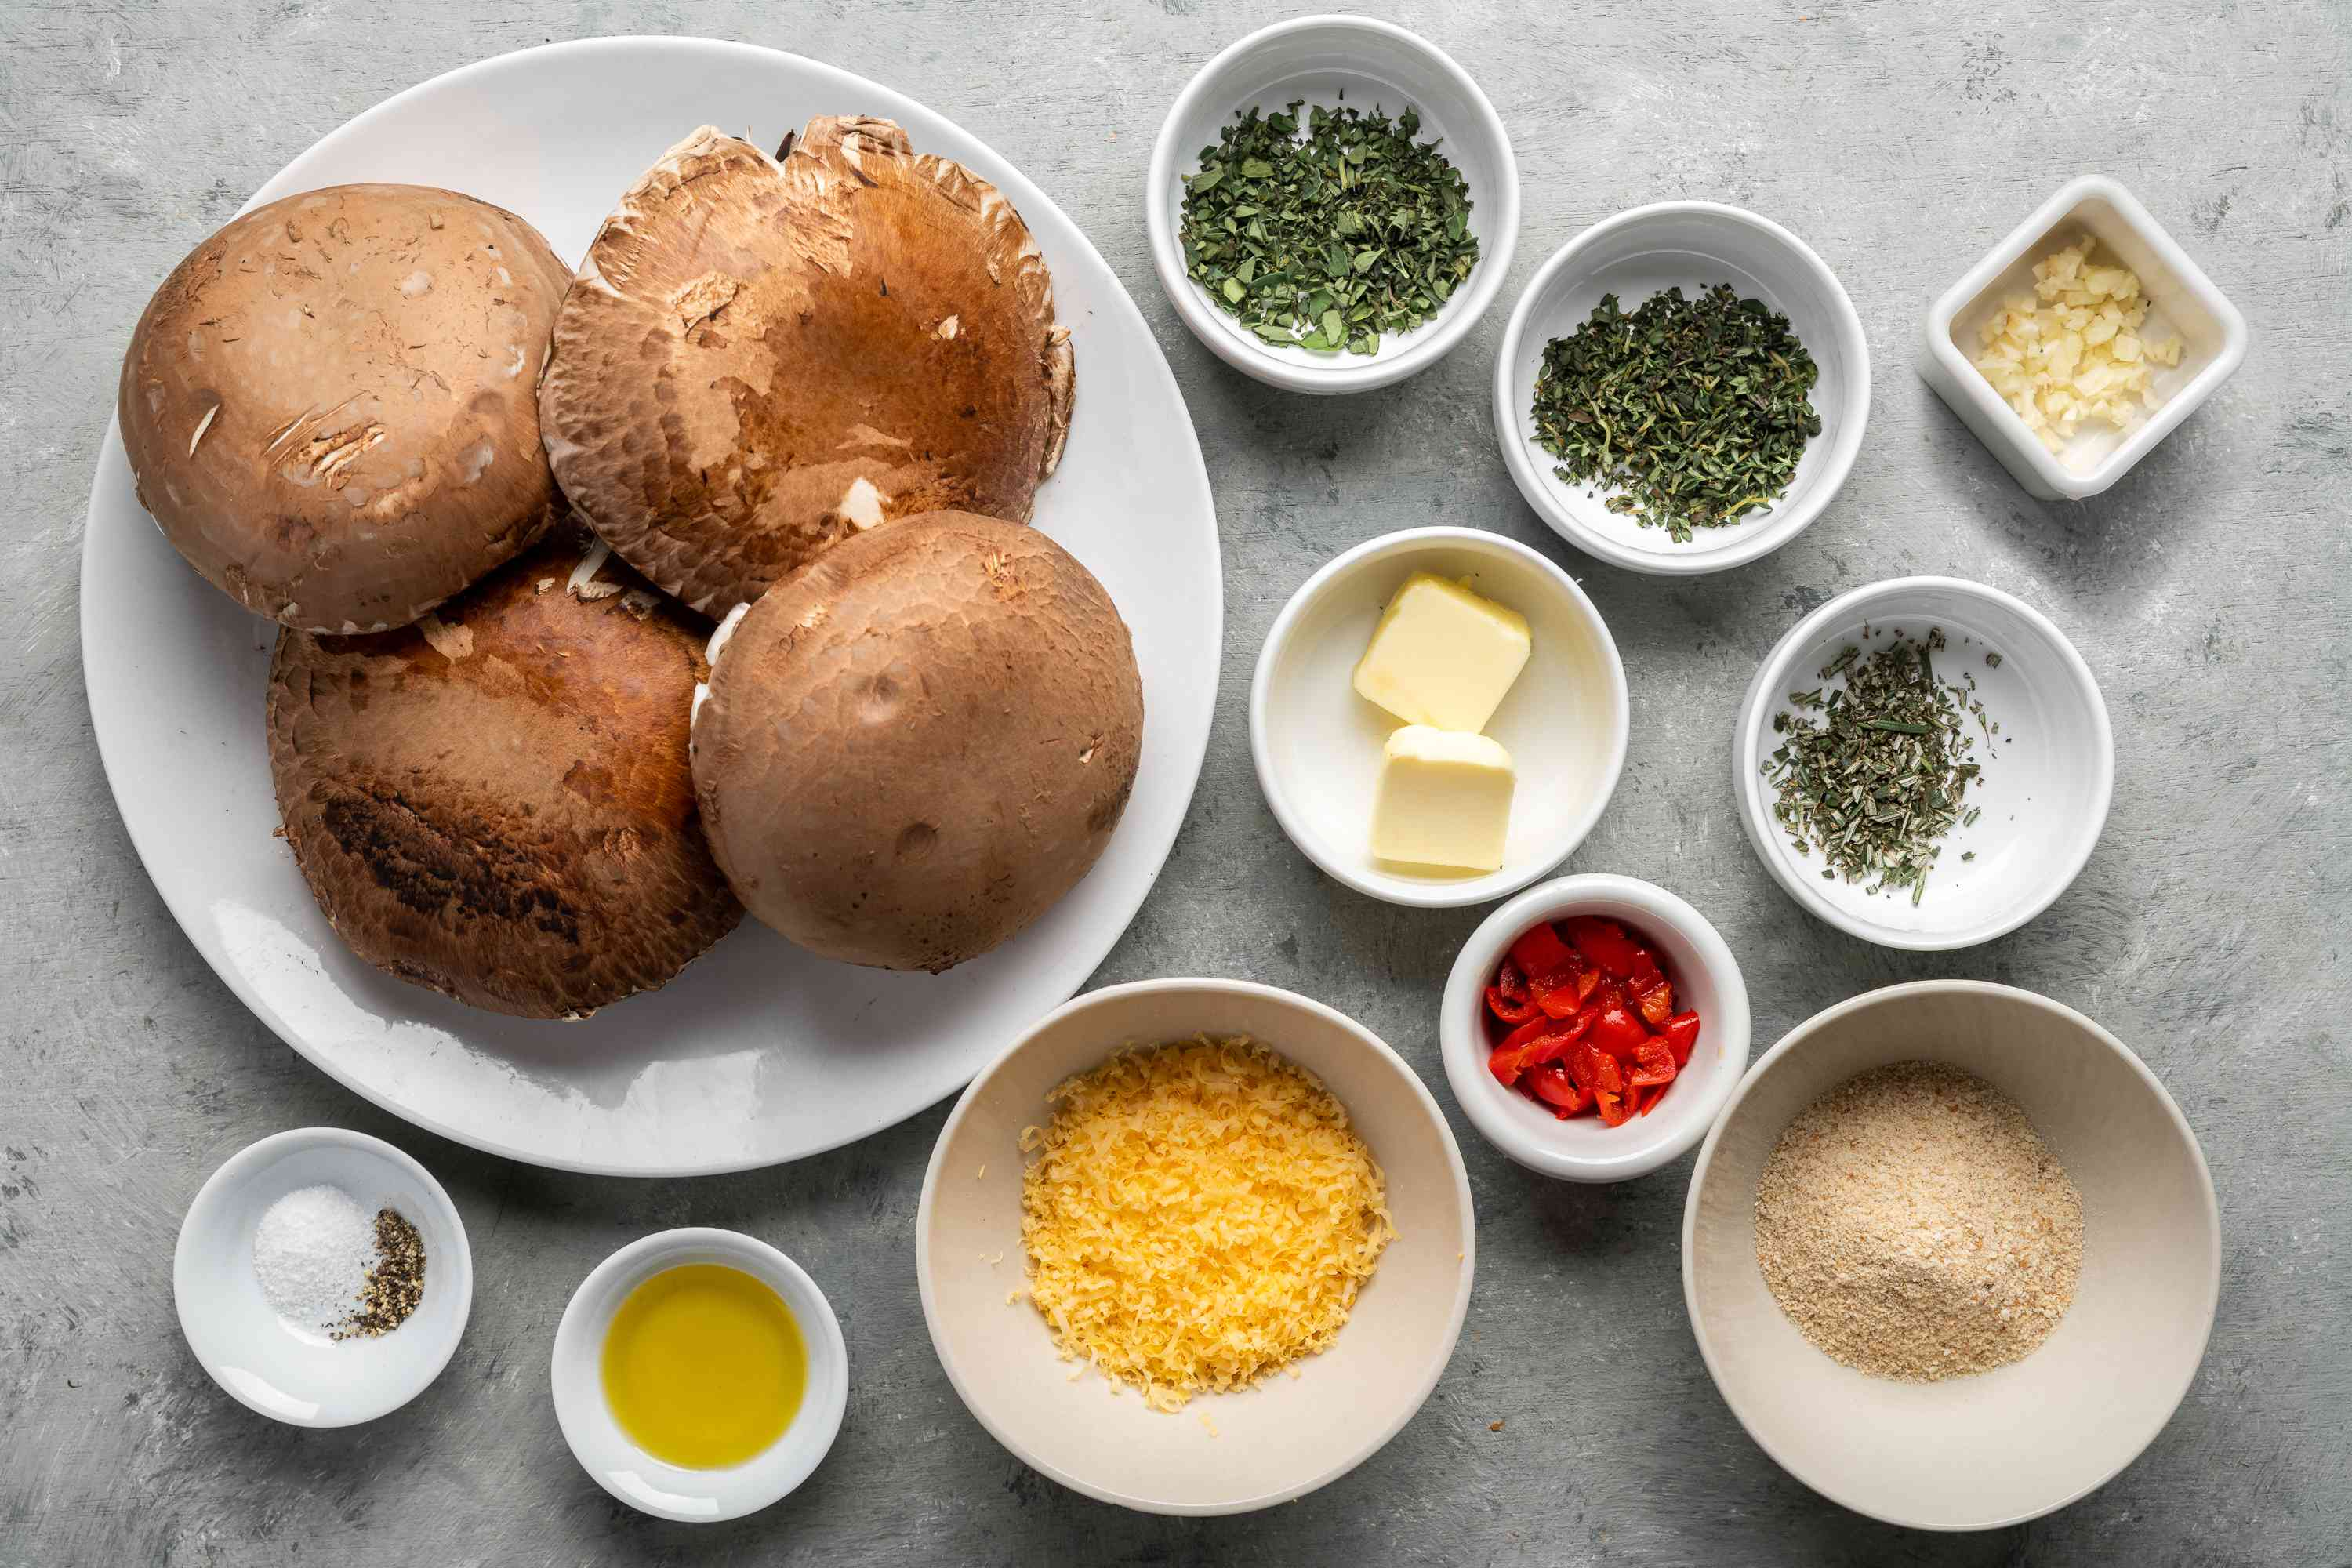 Ingredients for grilled herb and cheese stuffed mushrooms